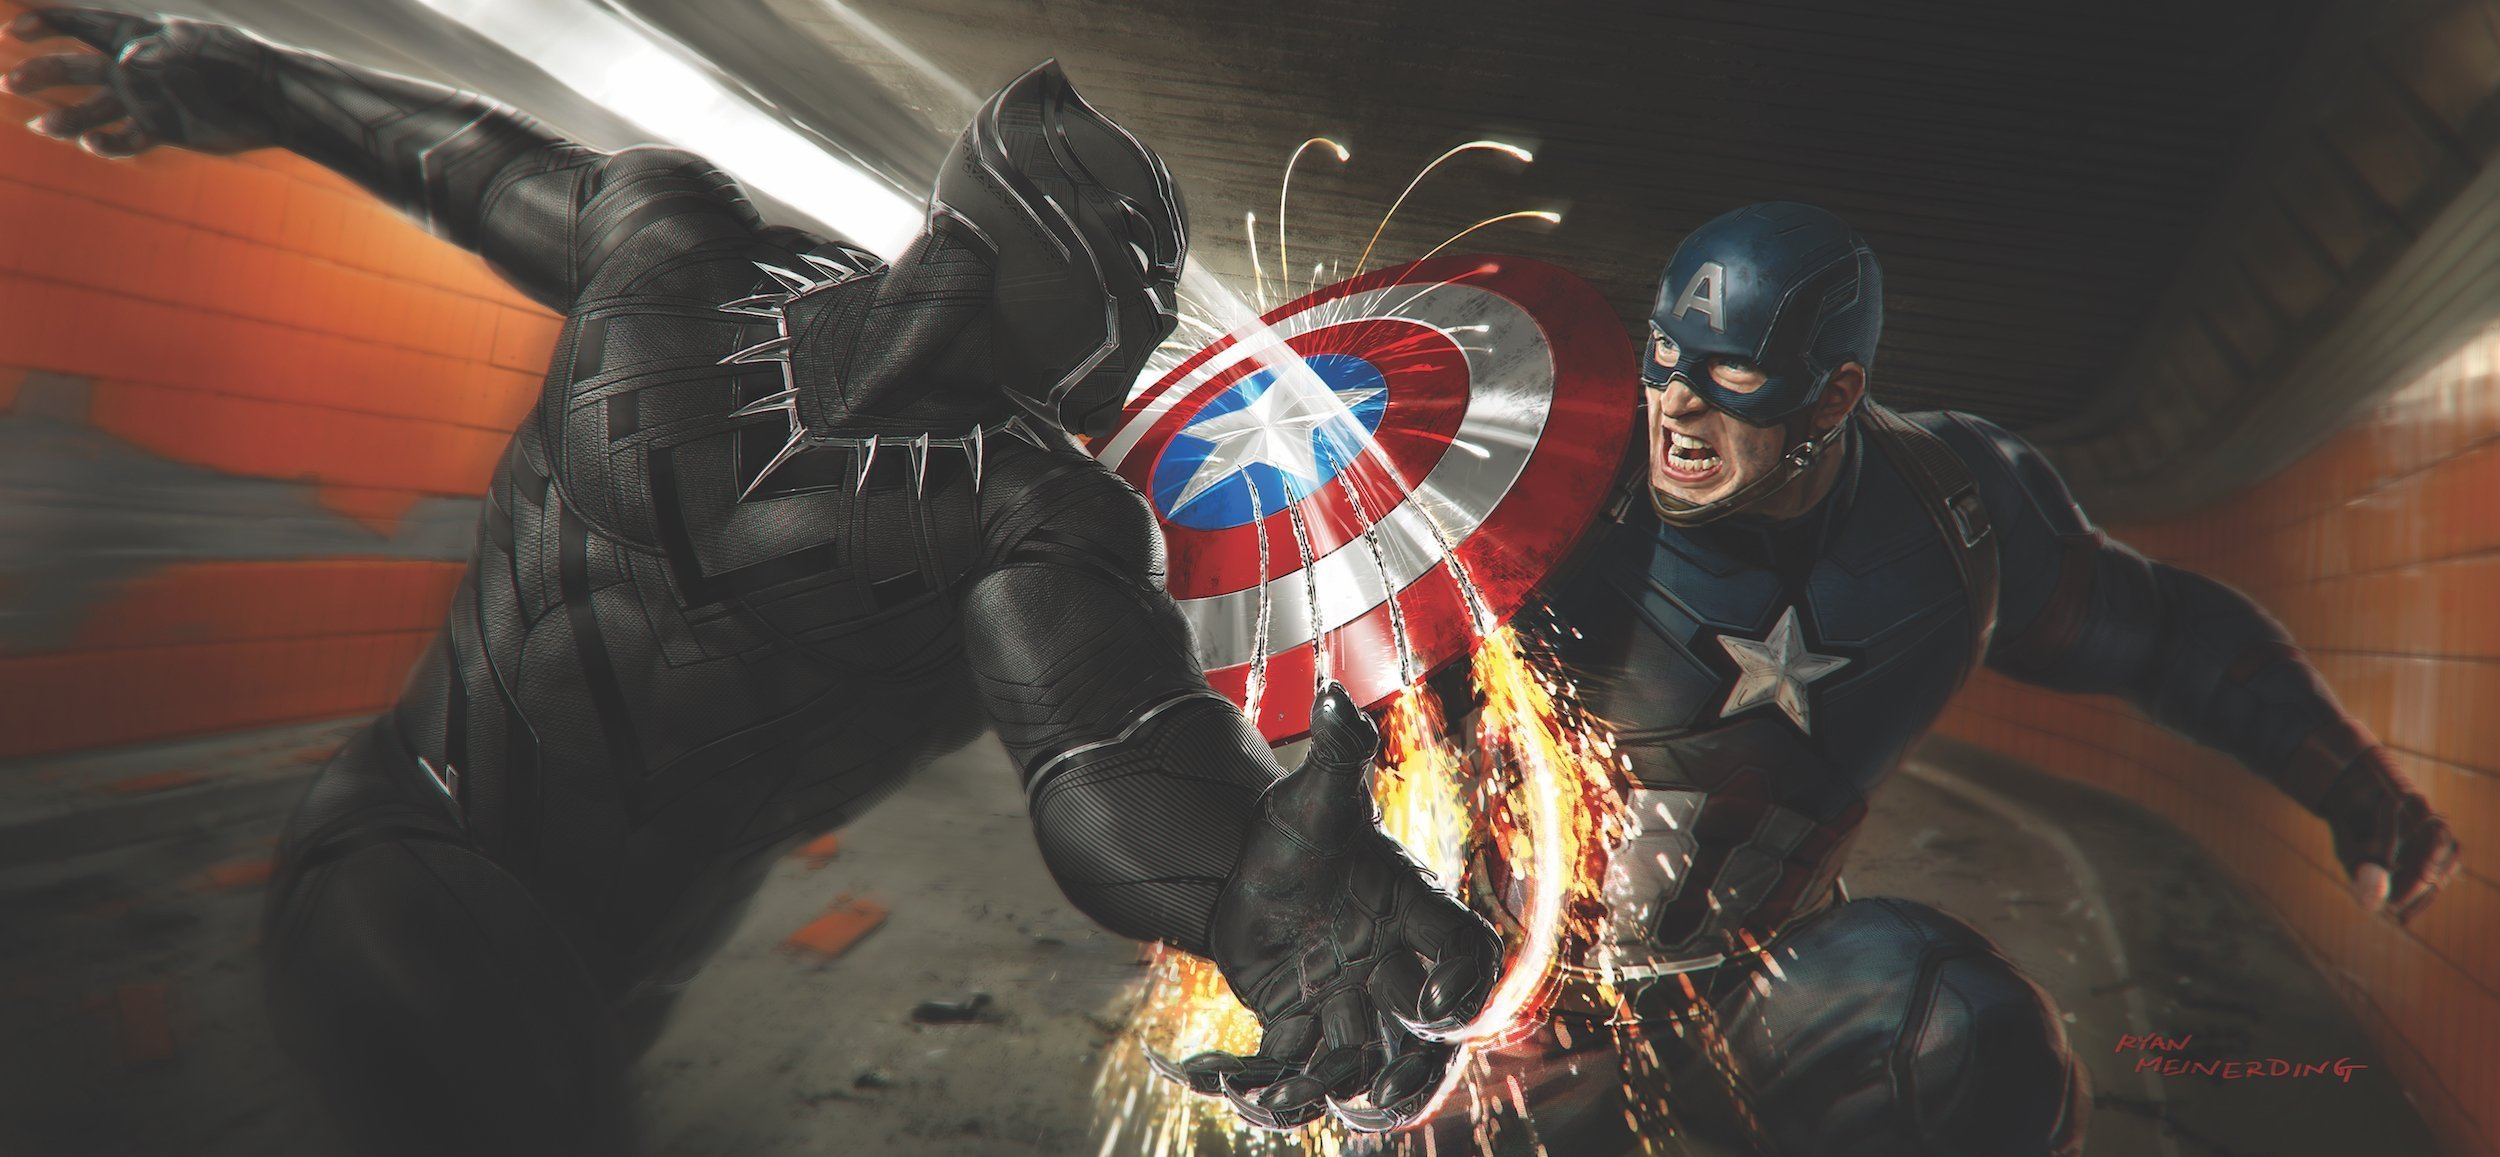 Concept art de Captain America: Civil War avec Black Panther griffant Captain America